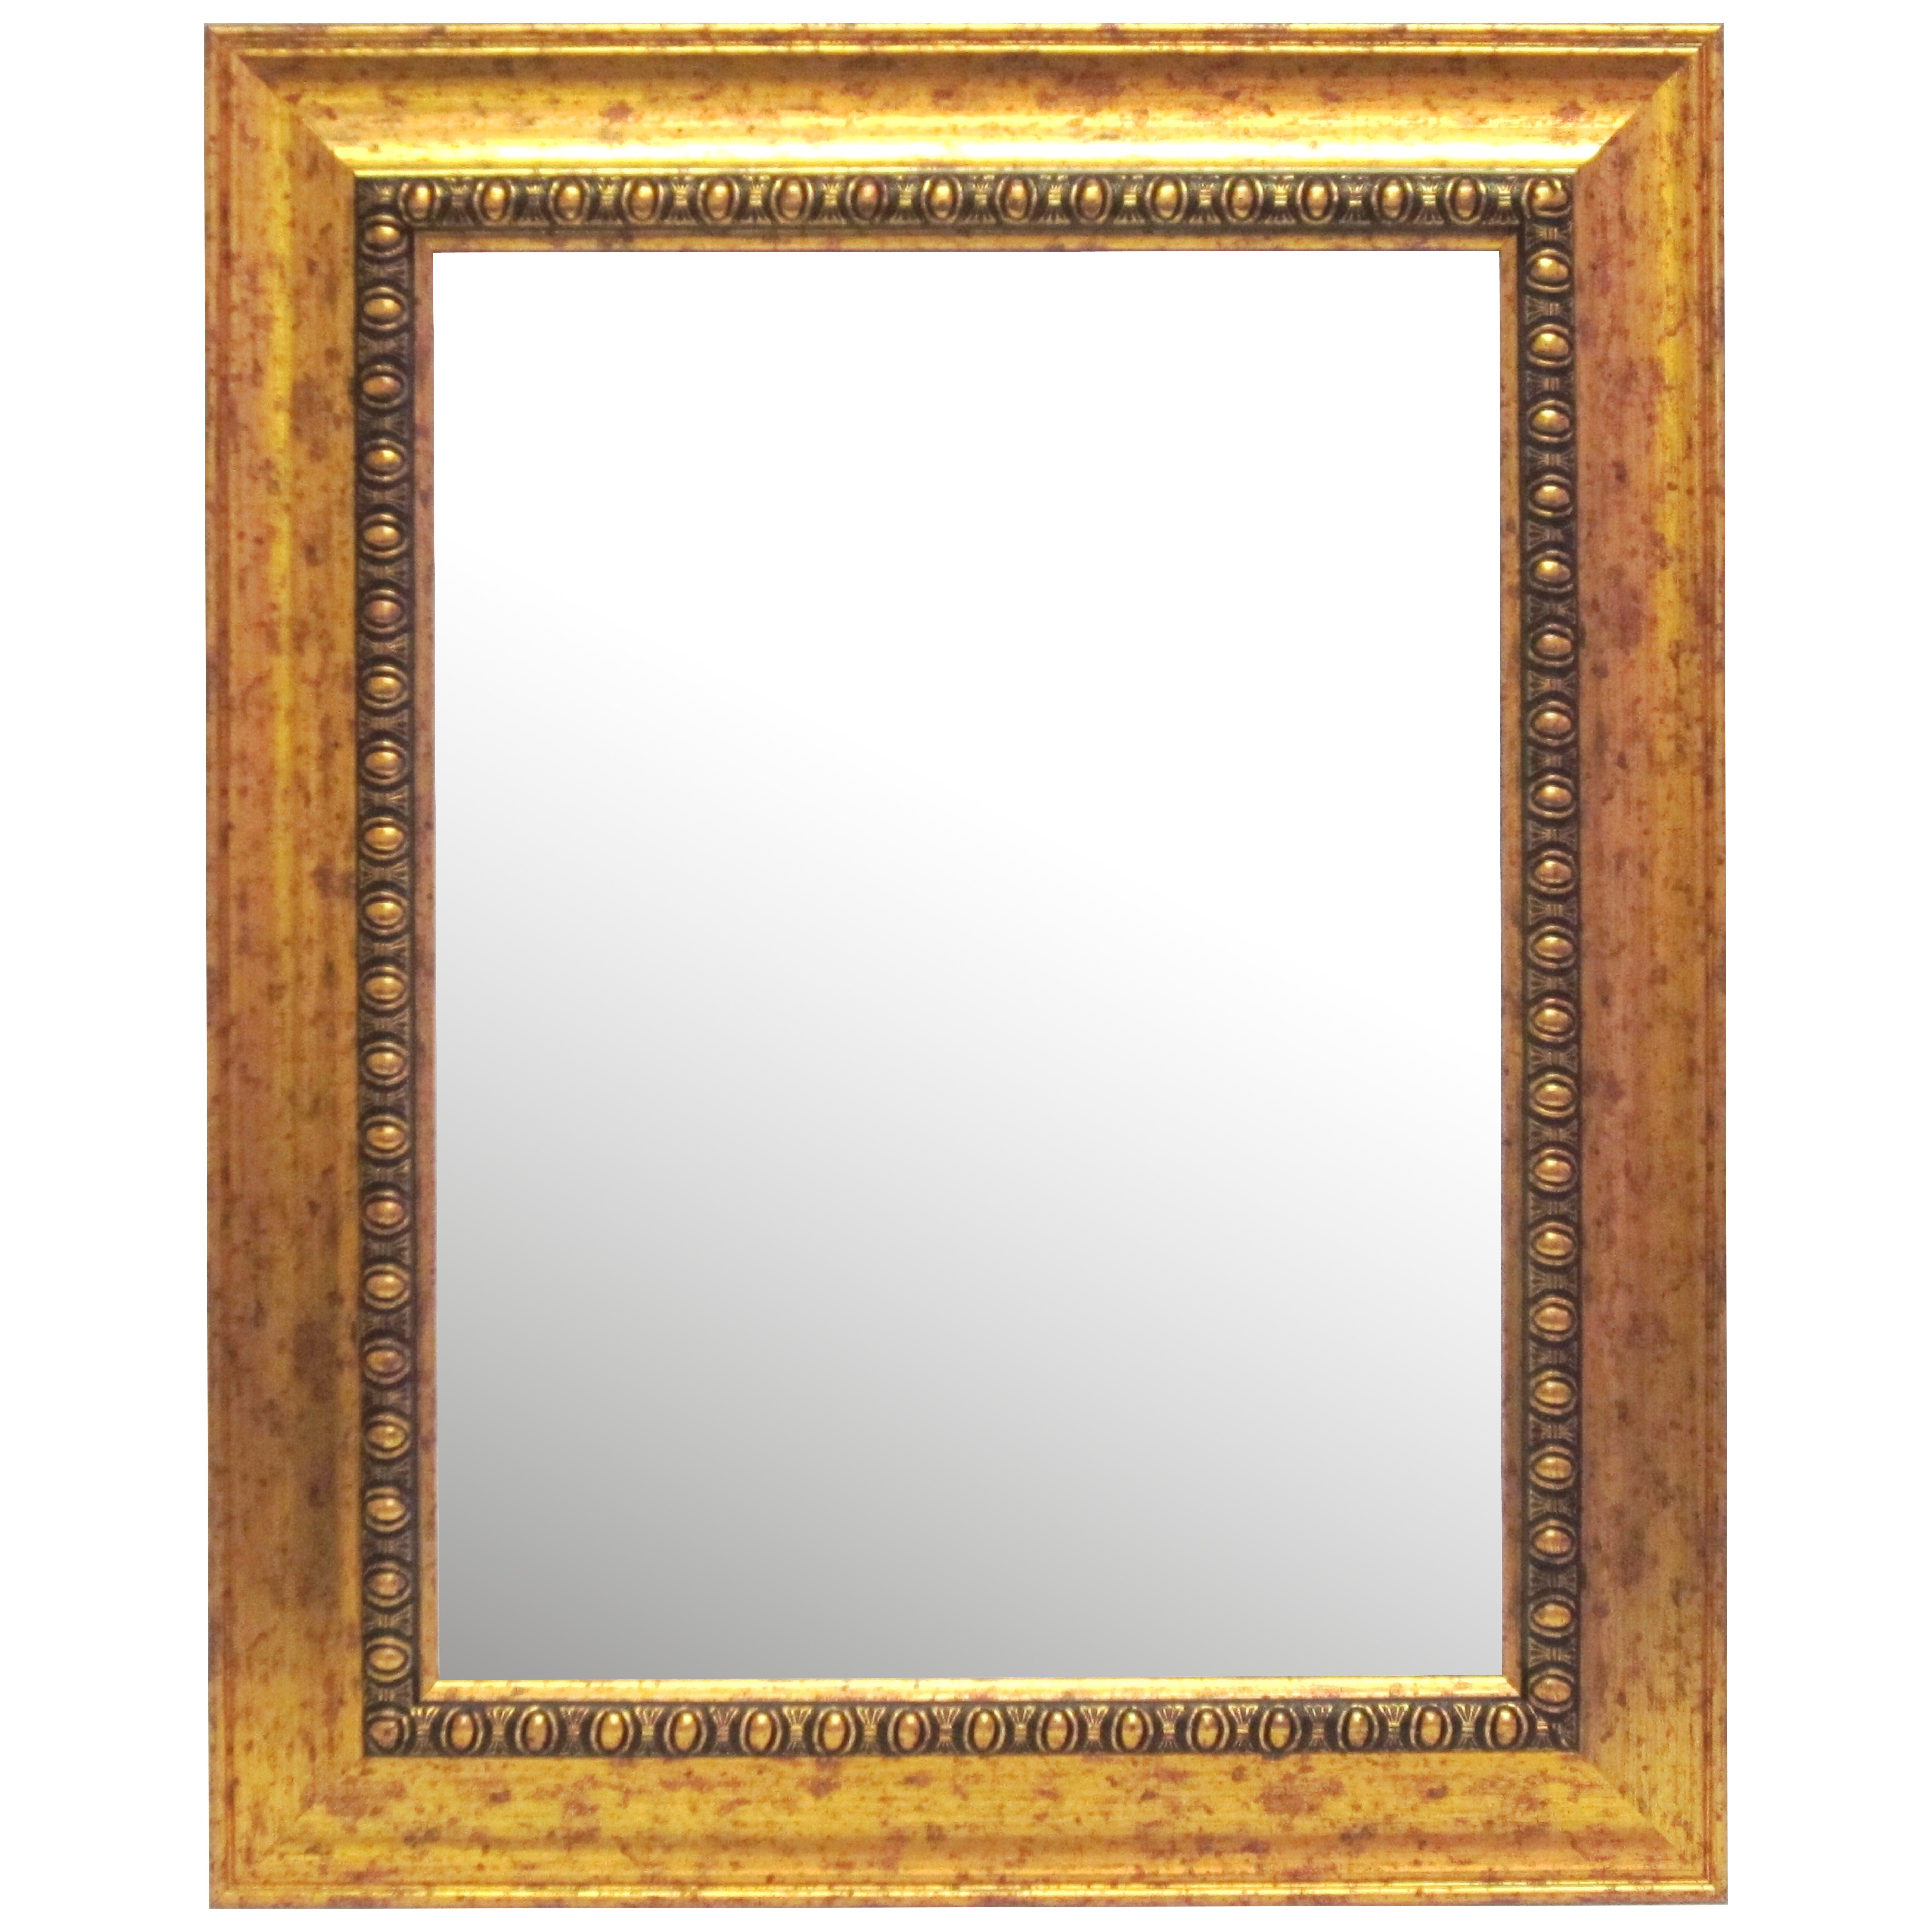 Alpine art and mirror beveled glass gold framed wall for Mirror framed wall mirror